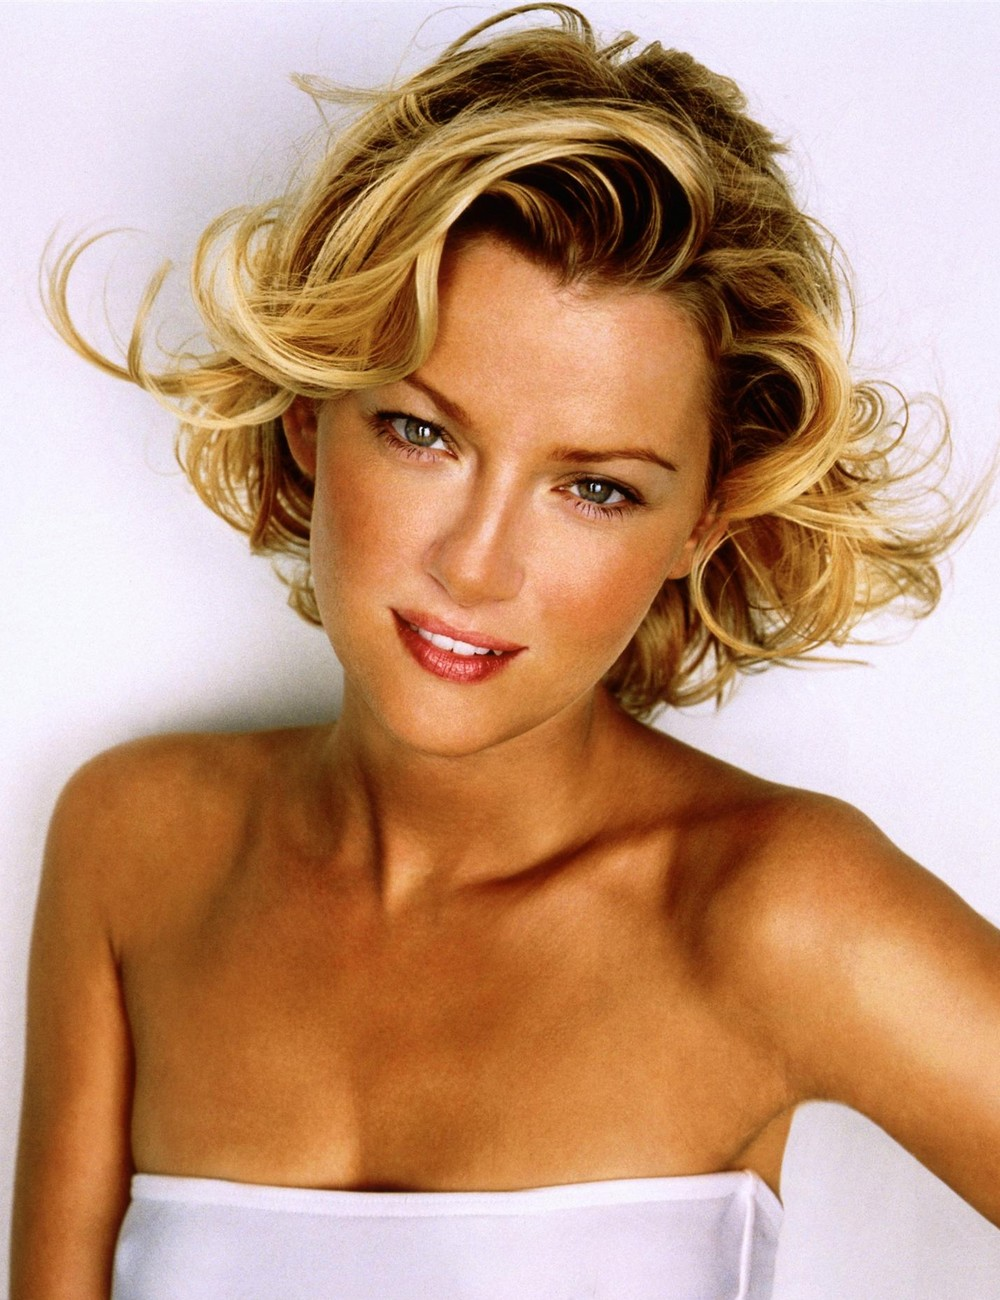 Gretchen mol boardwalk empire season 2